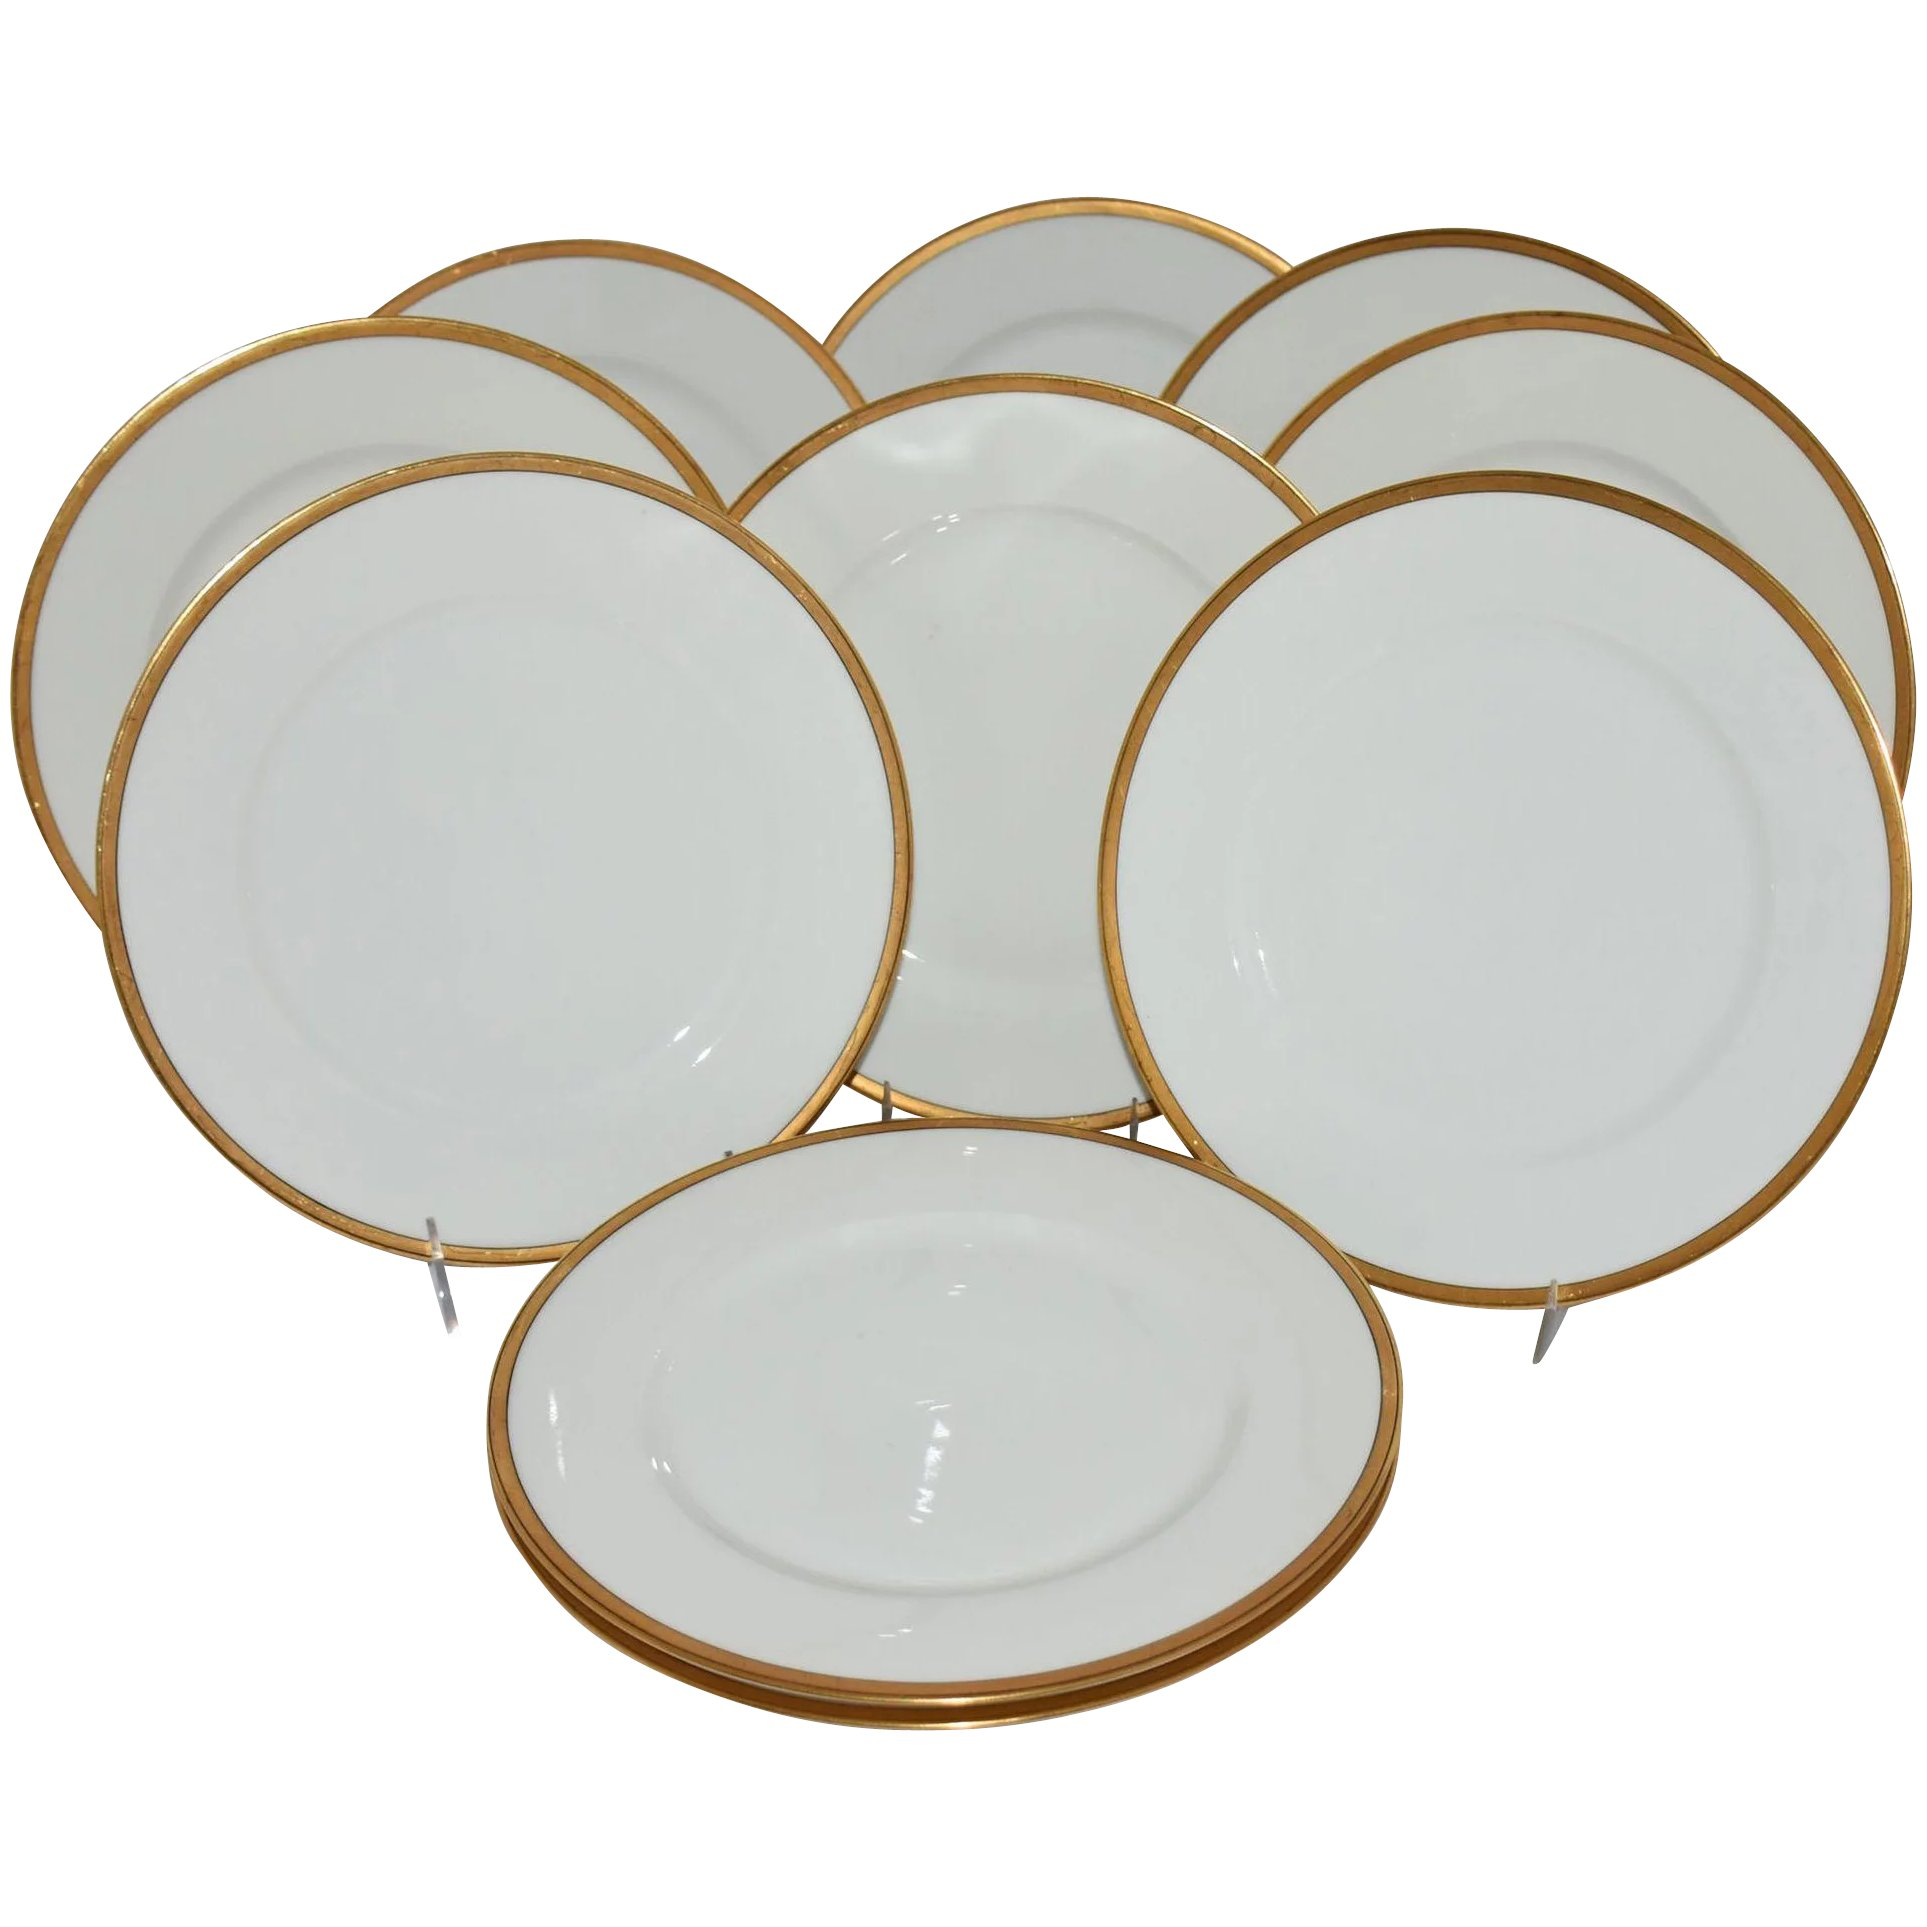 Limoges China Patterns Gold Trim Cool Design Inspiration